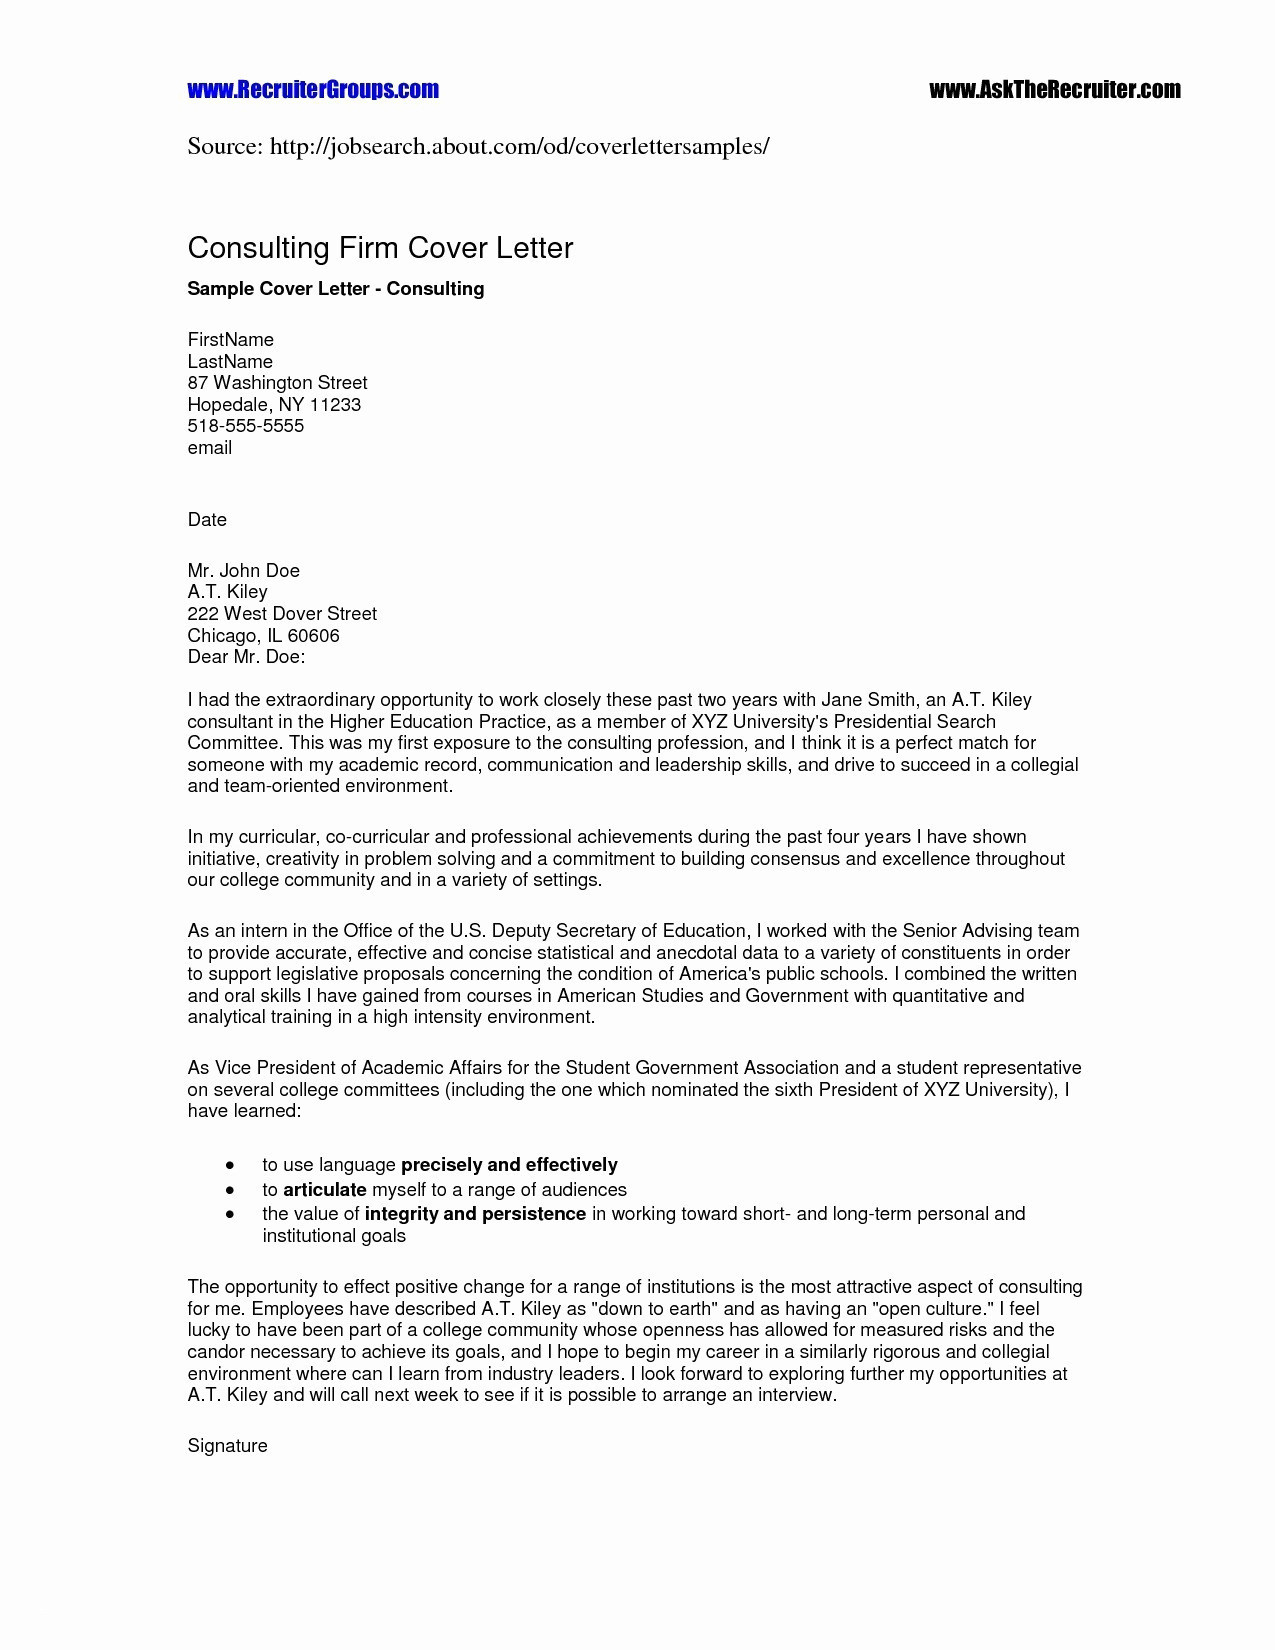 uchicago resume template Collection-T Cover Letter Template Cv Templates Chicago Resume Template Updated First Resume Template Best Cover 13-l